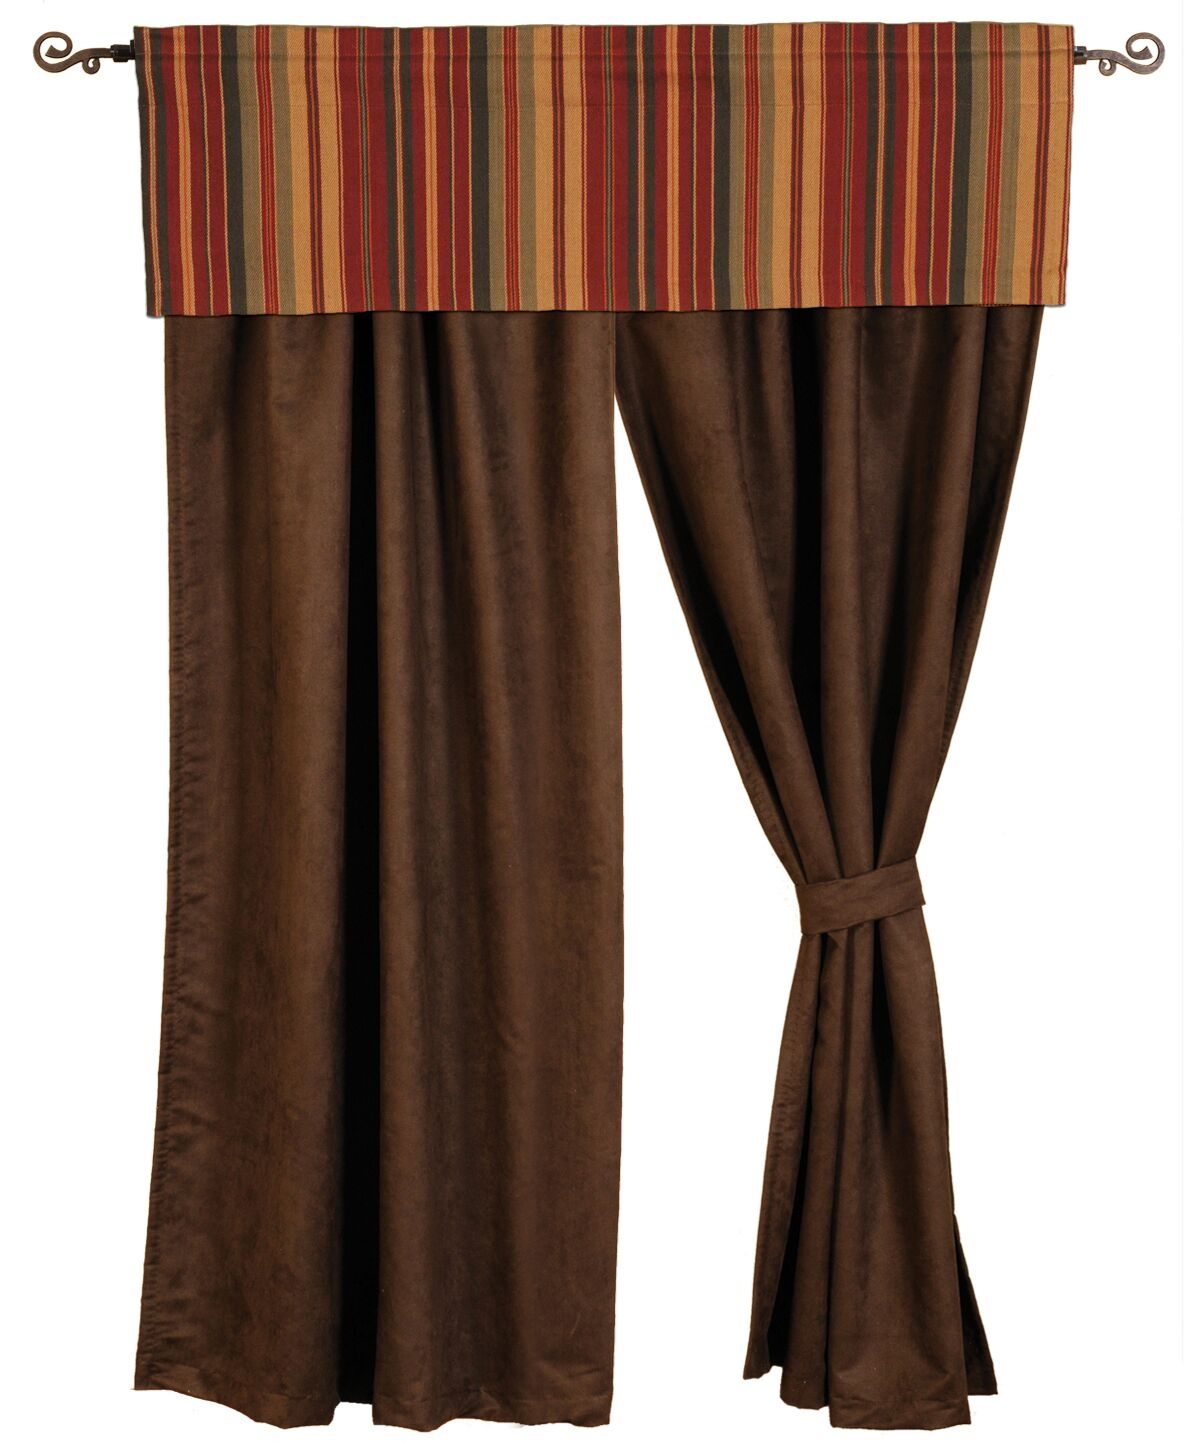 Bandera II Drape Sets Wooded River - unique linens online